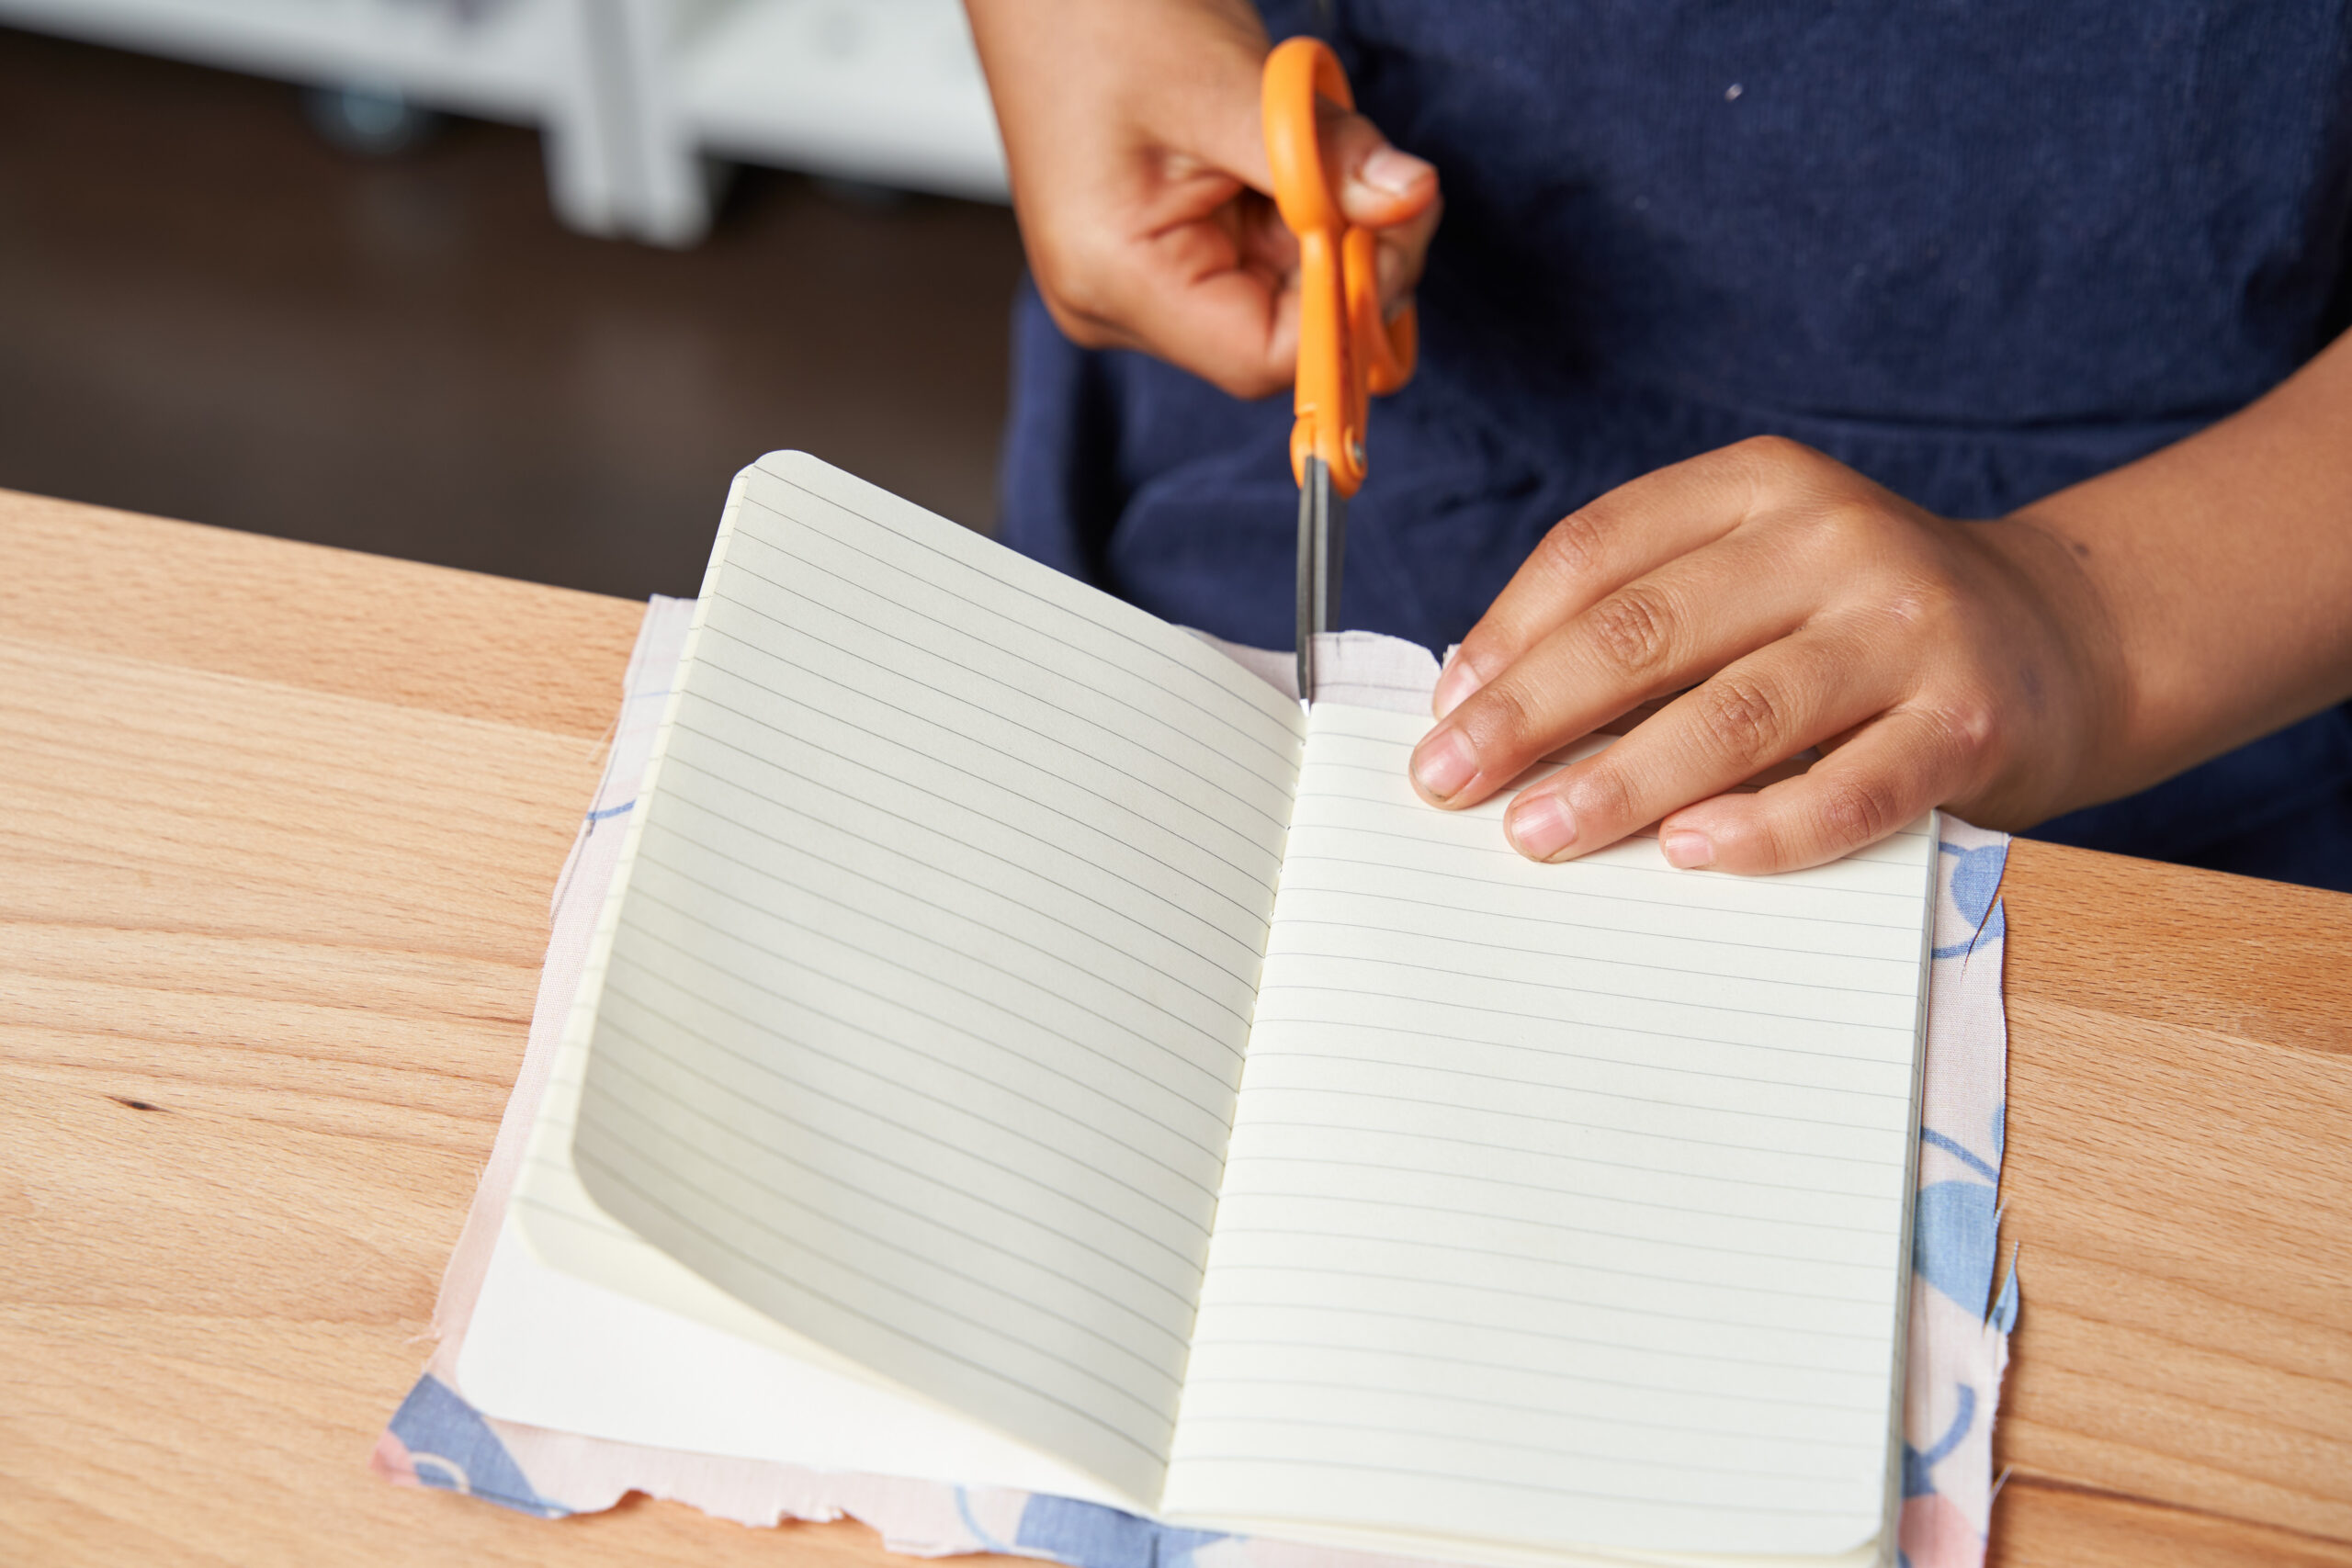 Scissors cutting small slits into the notebook fabric edges